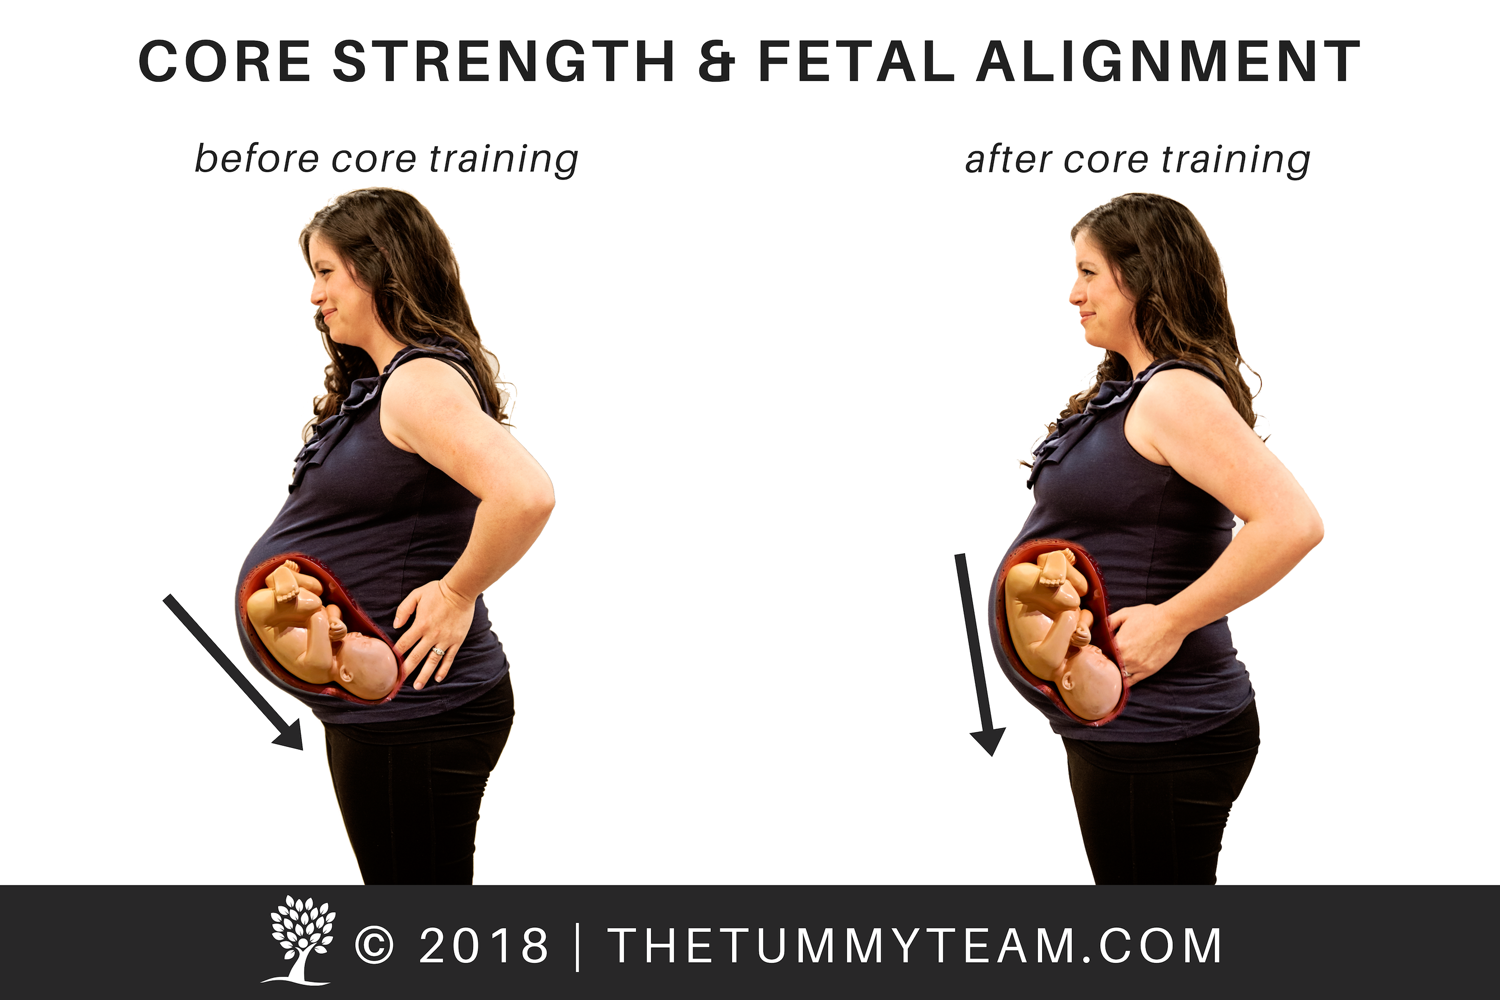 prenatal core training, copyright, The Tummy Team